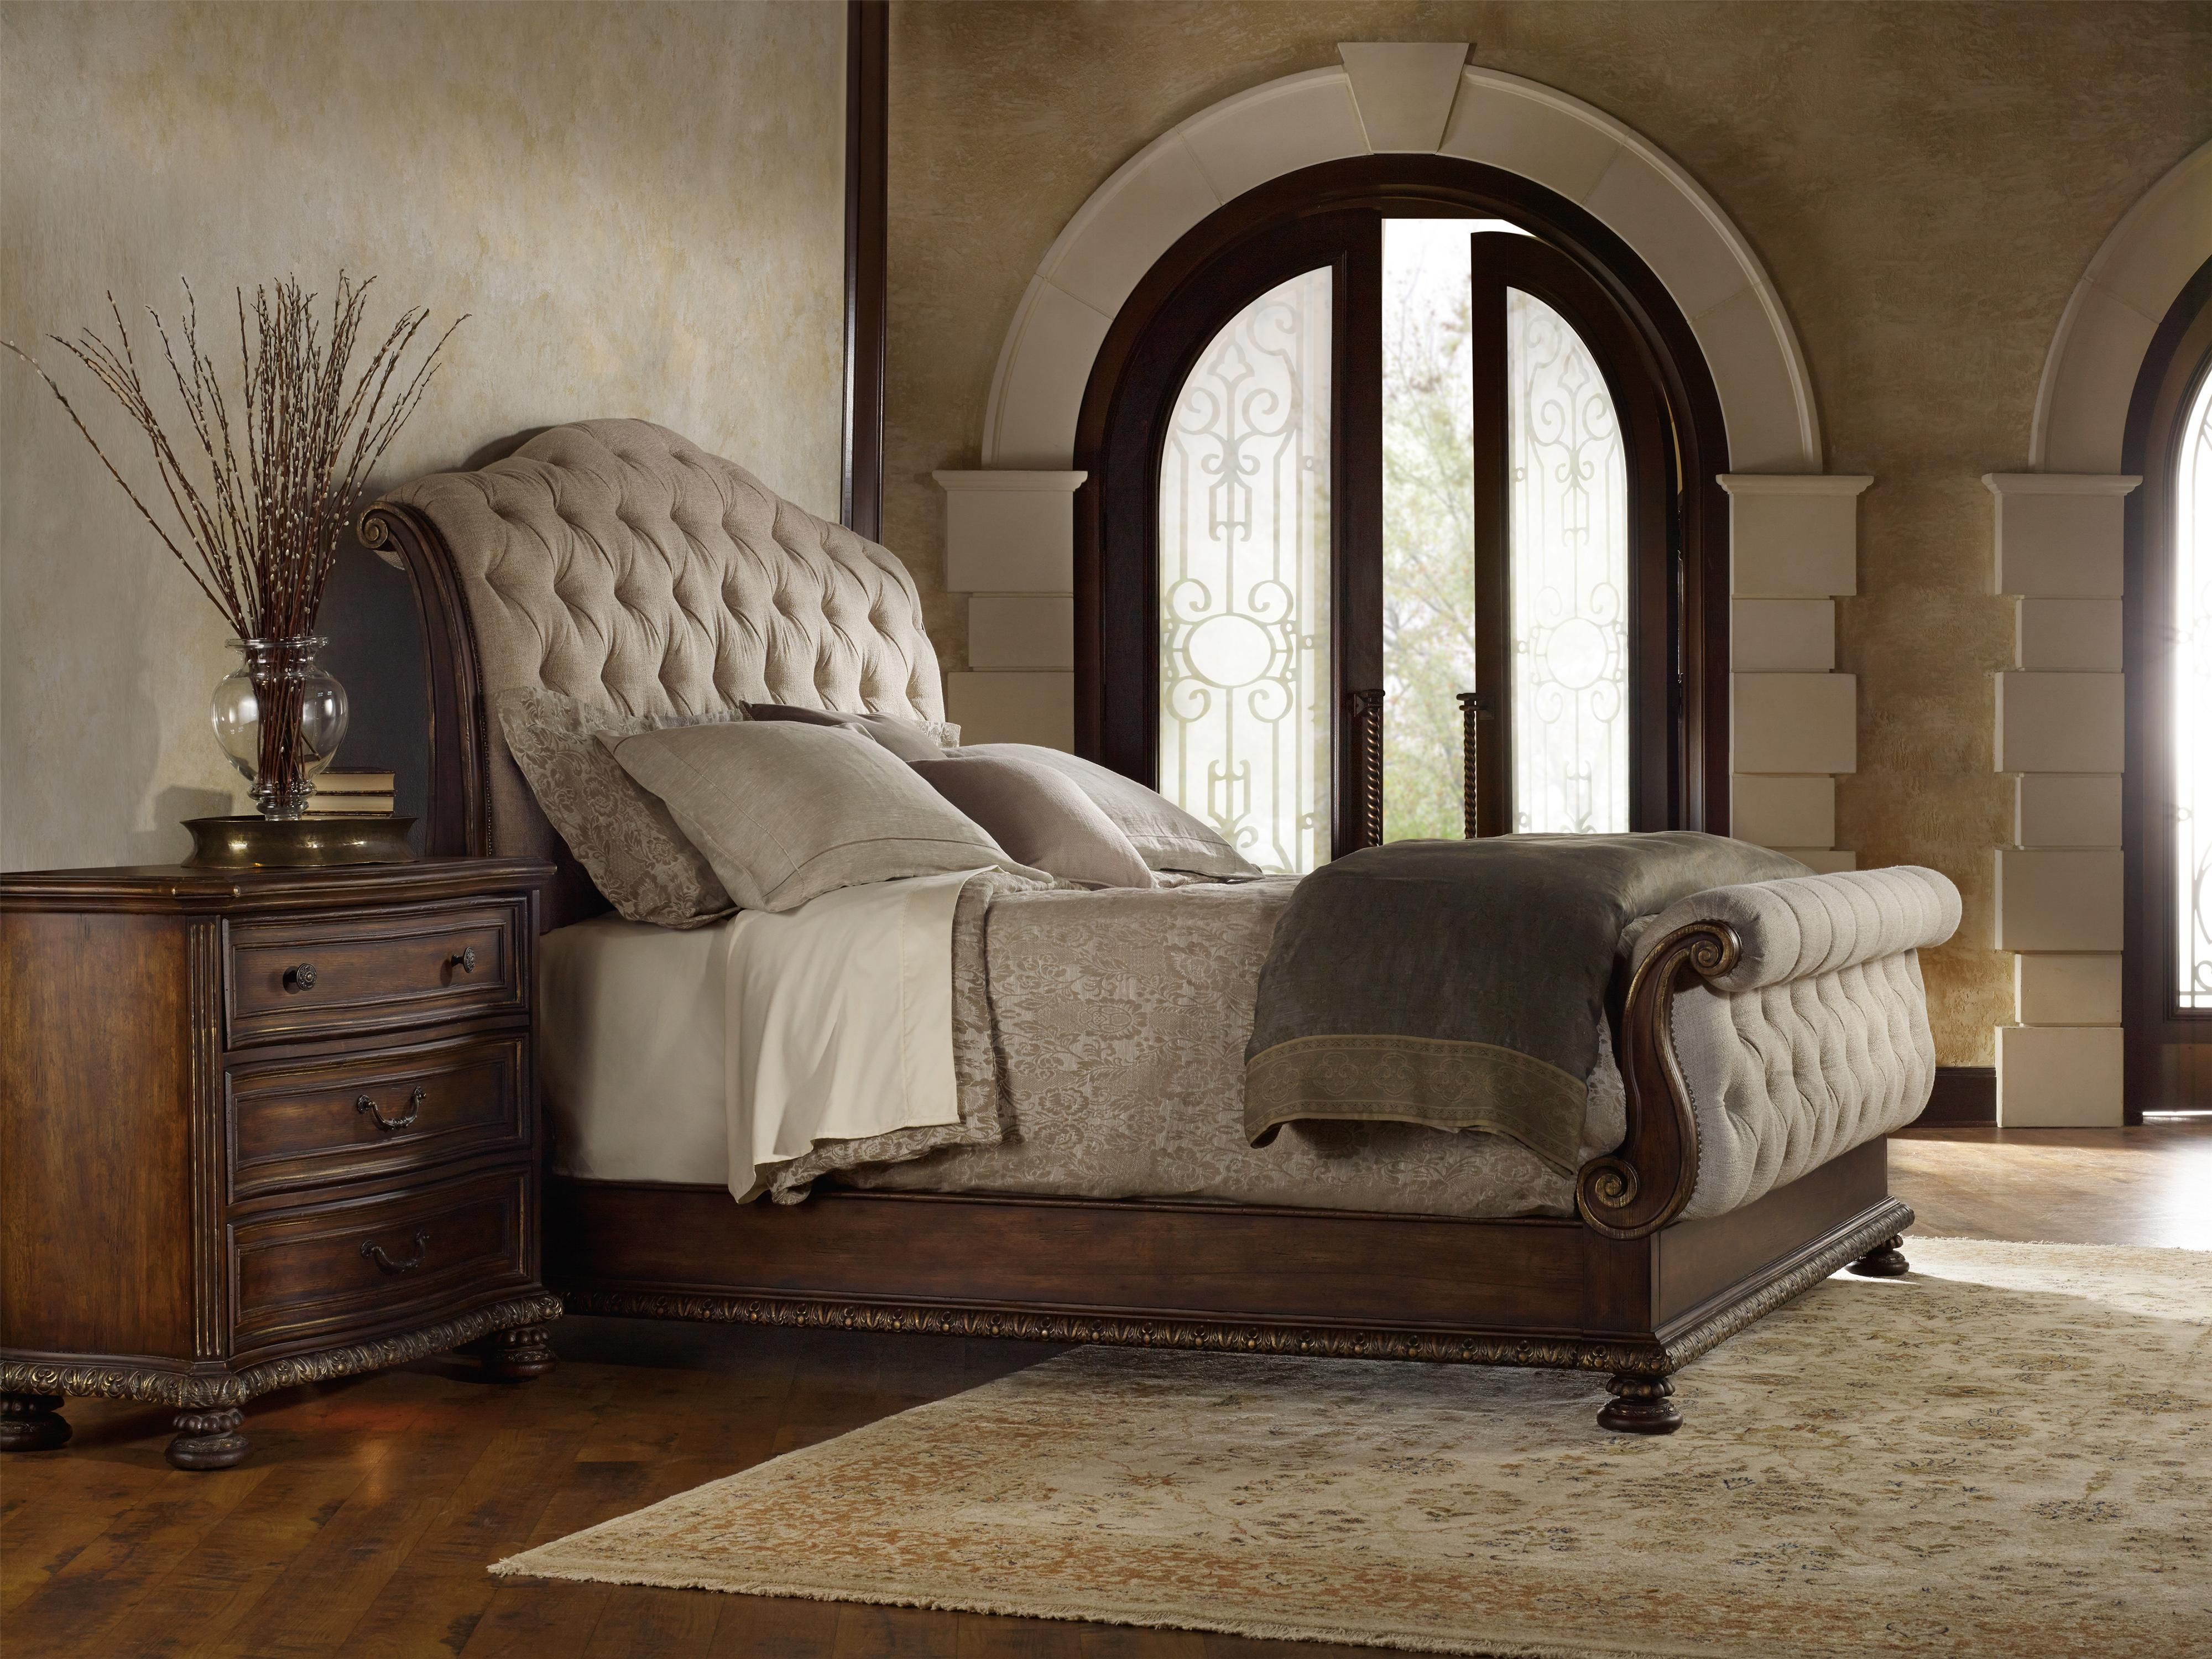 1000 Images About Master Bedroom On Pinterest Jessica